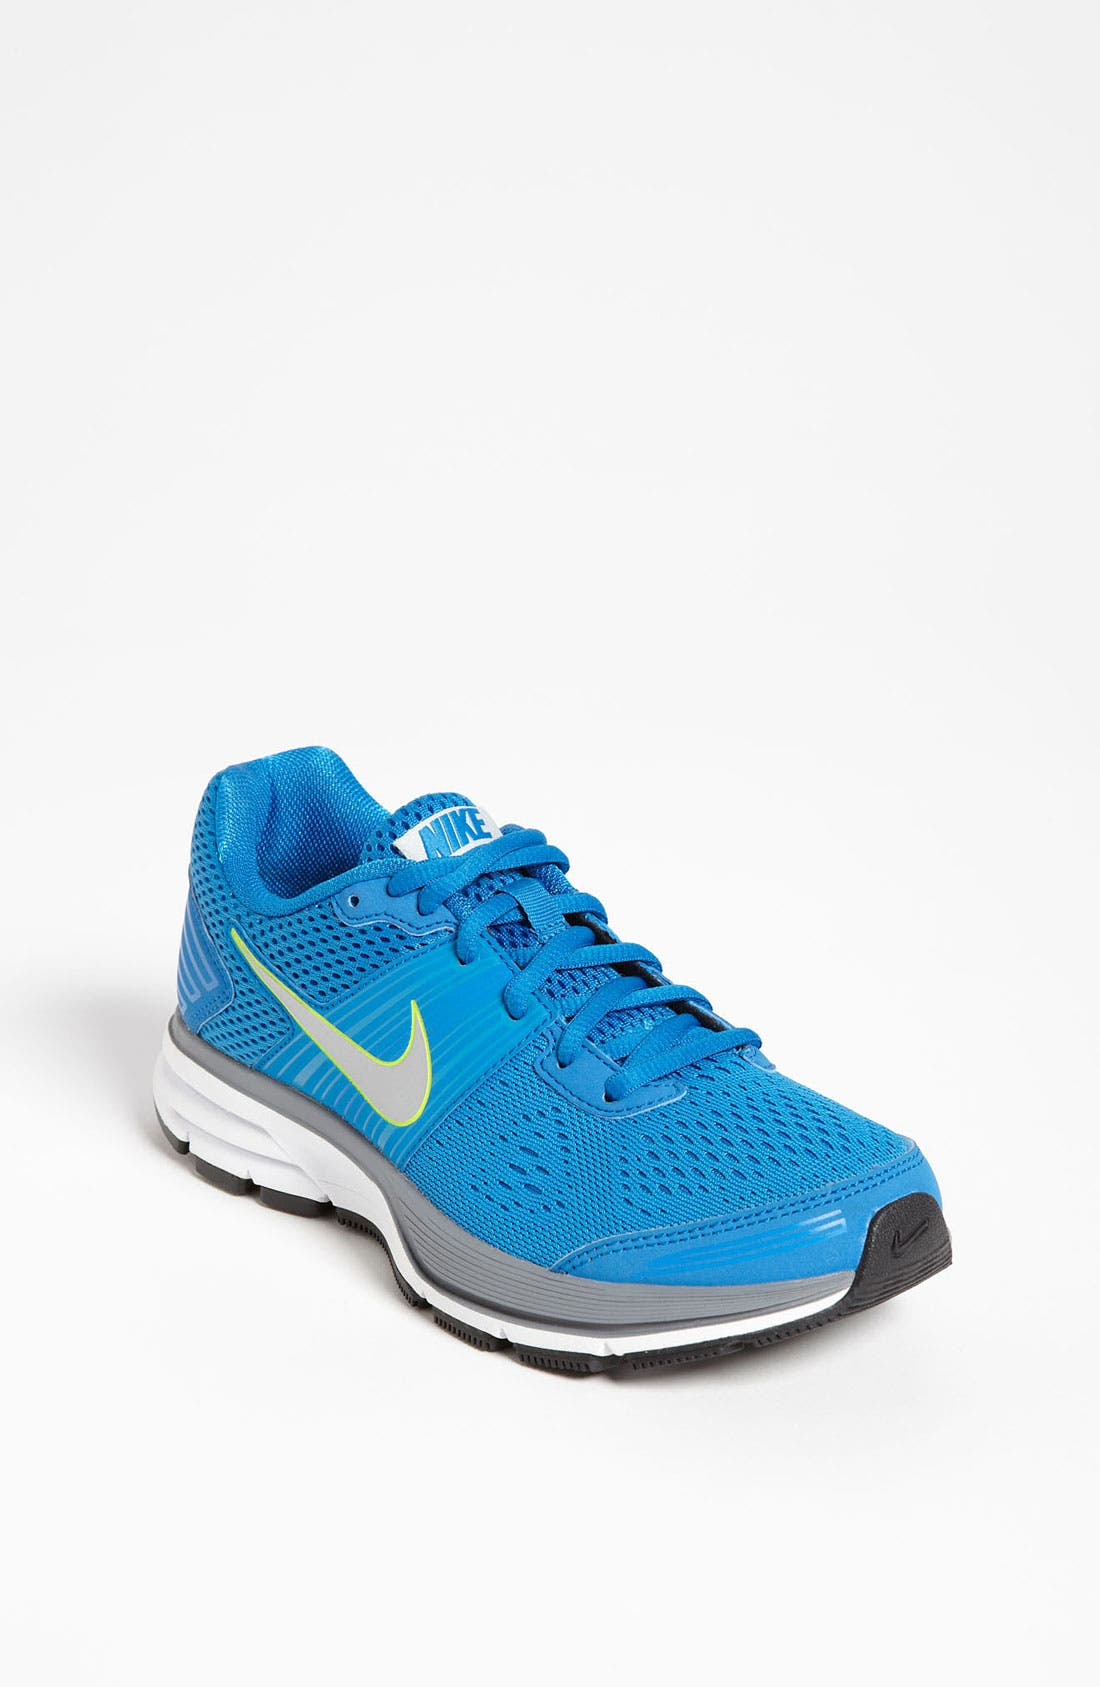 Alternate Image 1 Selected - Nike 'Air Pegasus+ 29' Athletic Shoe (Little Kid & Big Kid)